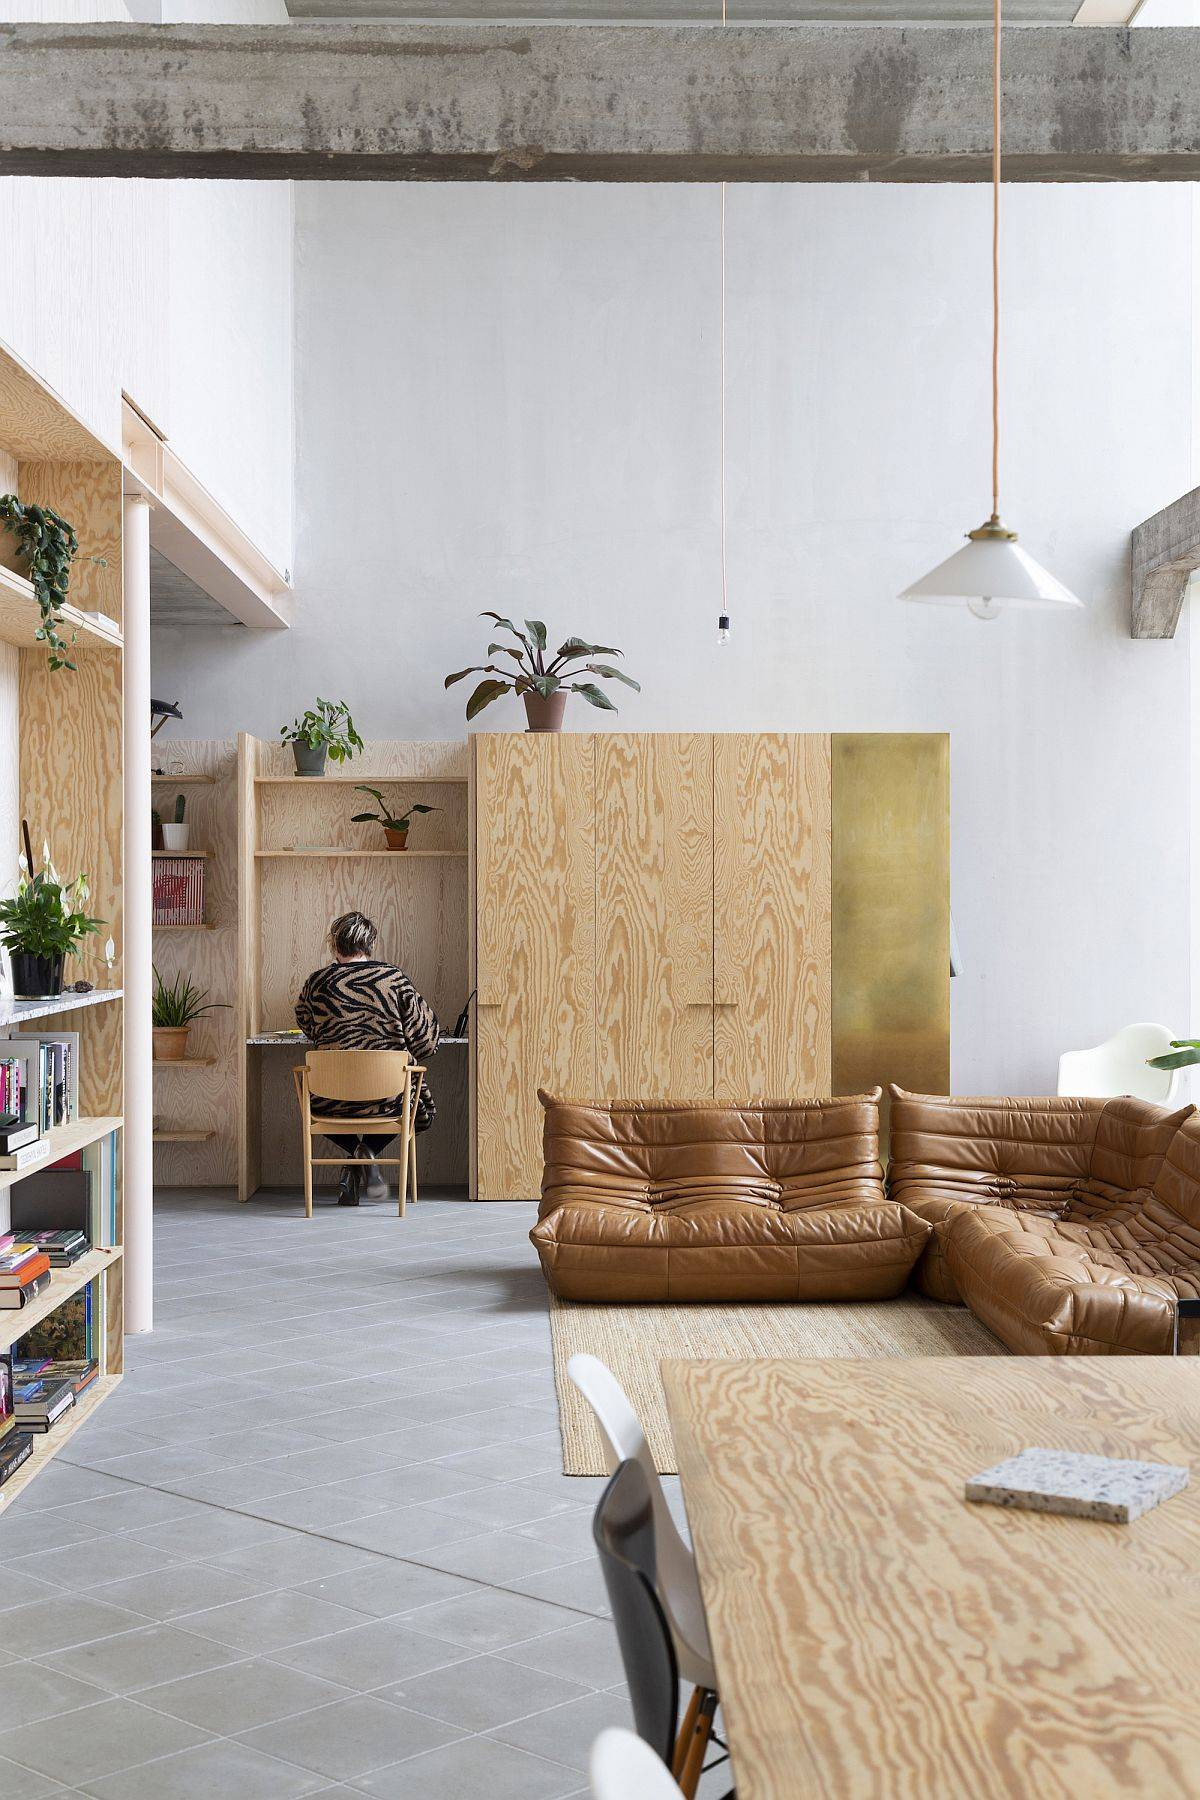 Wooden-decor-Togo-sofa-and-neutral-interior-of-the-modern-home-living-room-35700